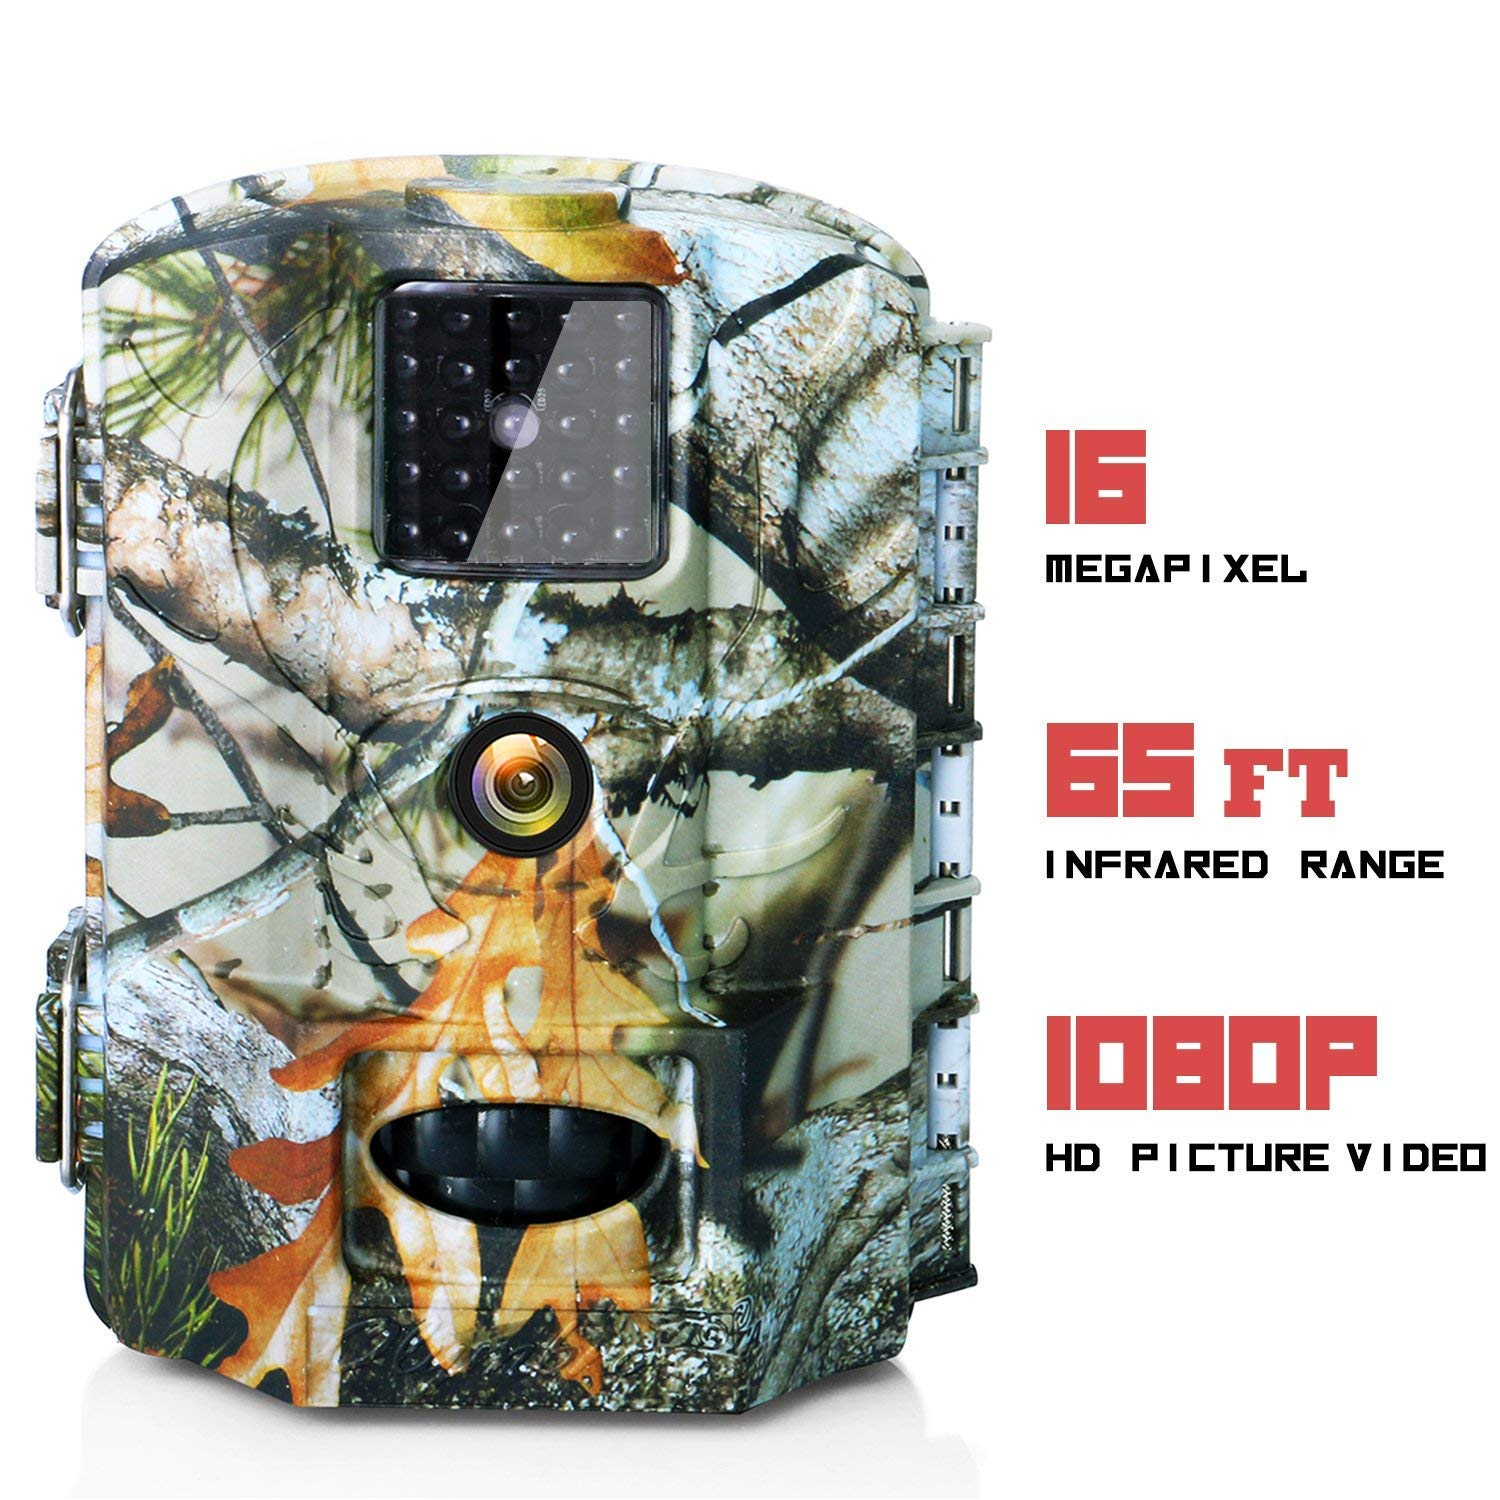 Olymbros Trail Game Camera 16MP 1080P HD IP65 with Night Vision Motion Activated 110 20m Detection Range Hunting Scouting Cam Trigger Time 0.6s Wildlife Monitoring with 2.4 LCD IR LEDs for Outdoor